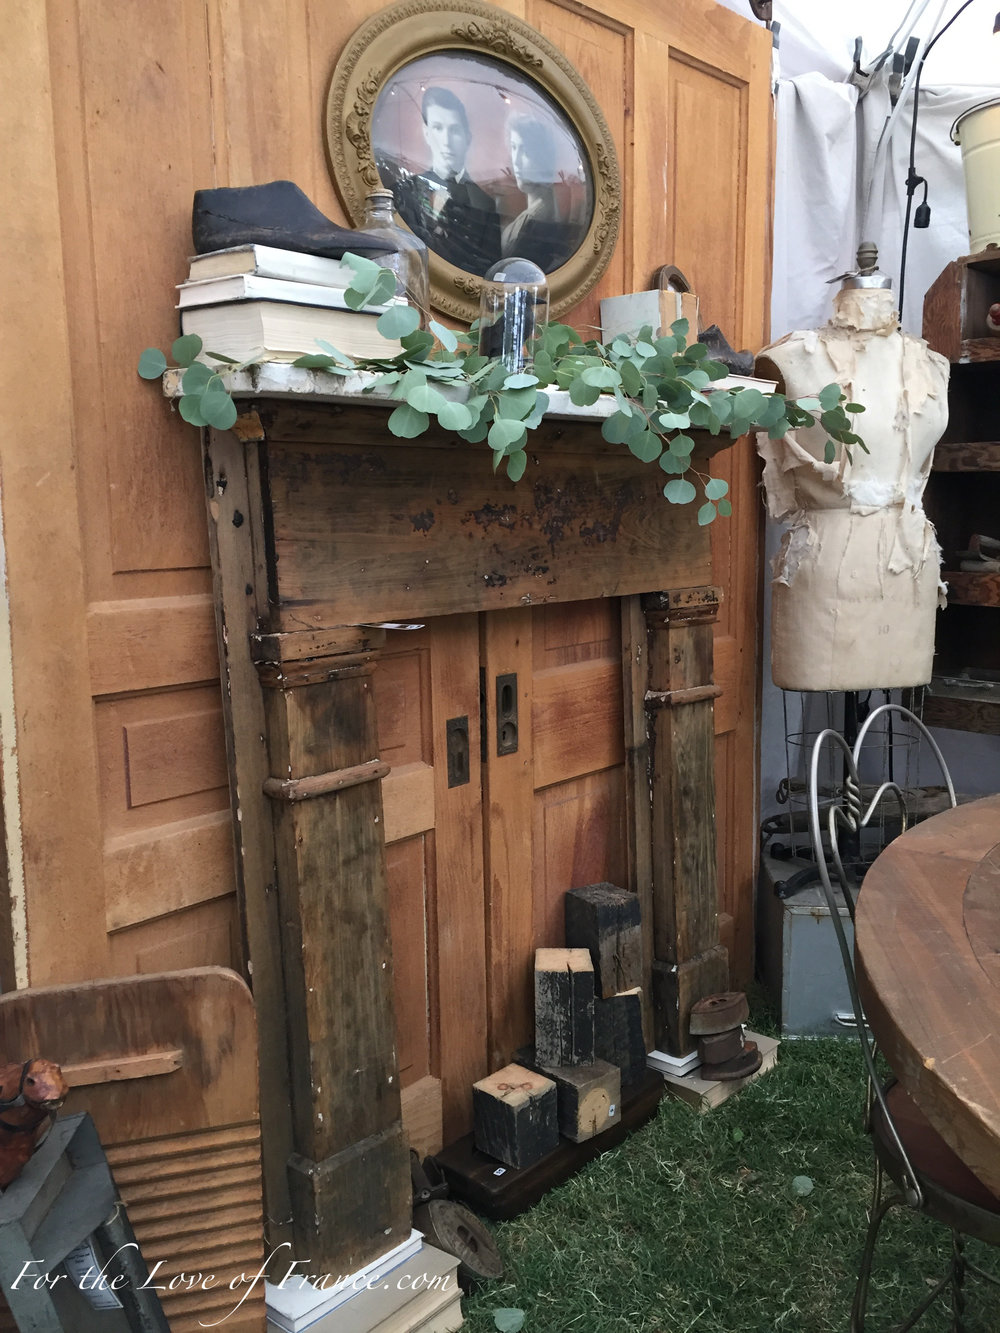 Vintage display with wooden pocket doors and fireplace surround